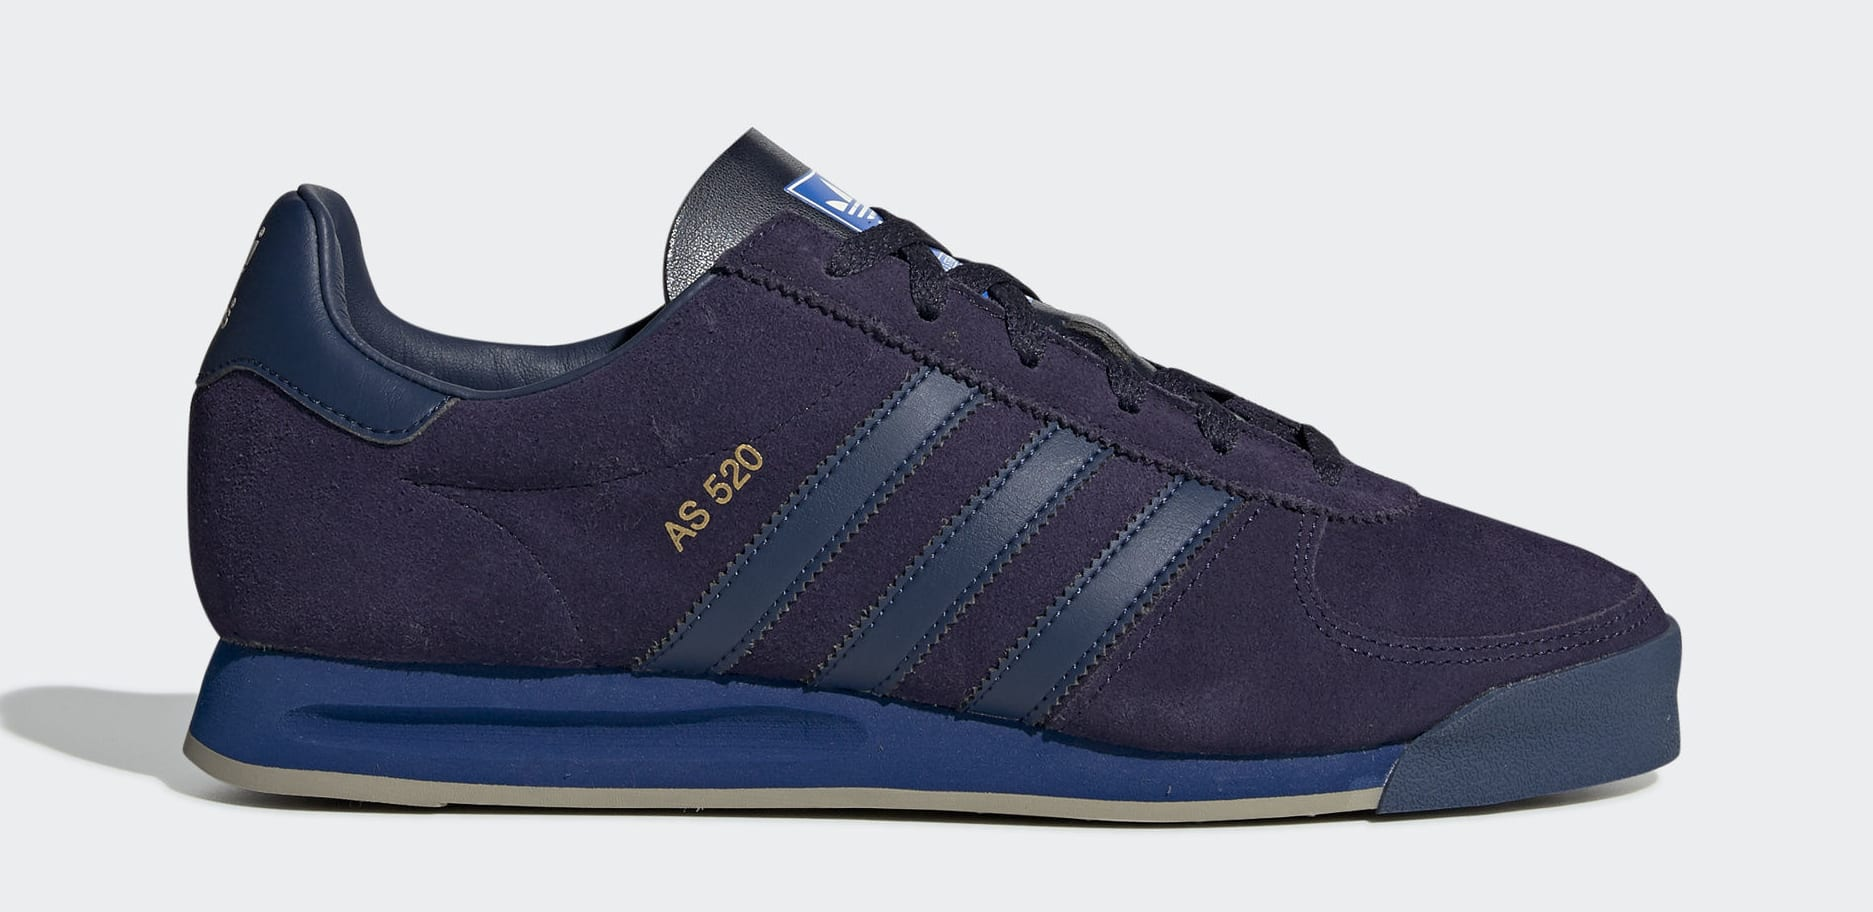 Adidas AS 520 Spezial Lateral F35711